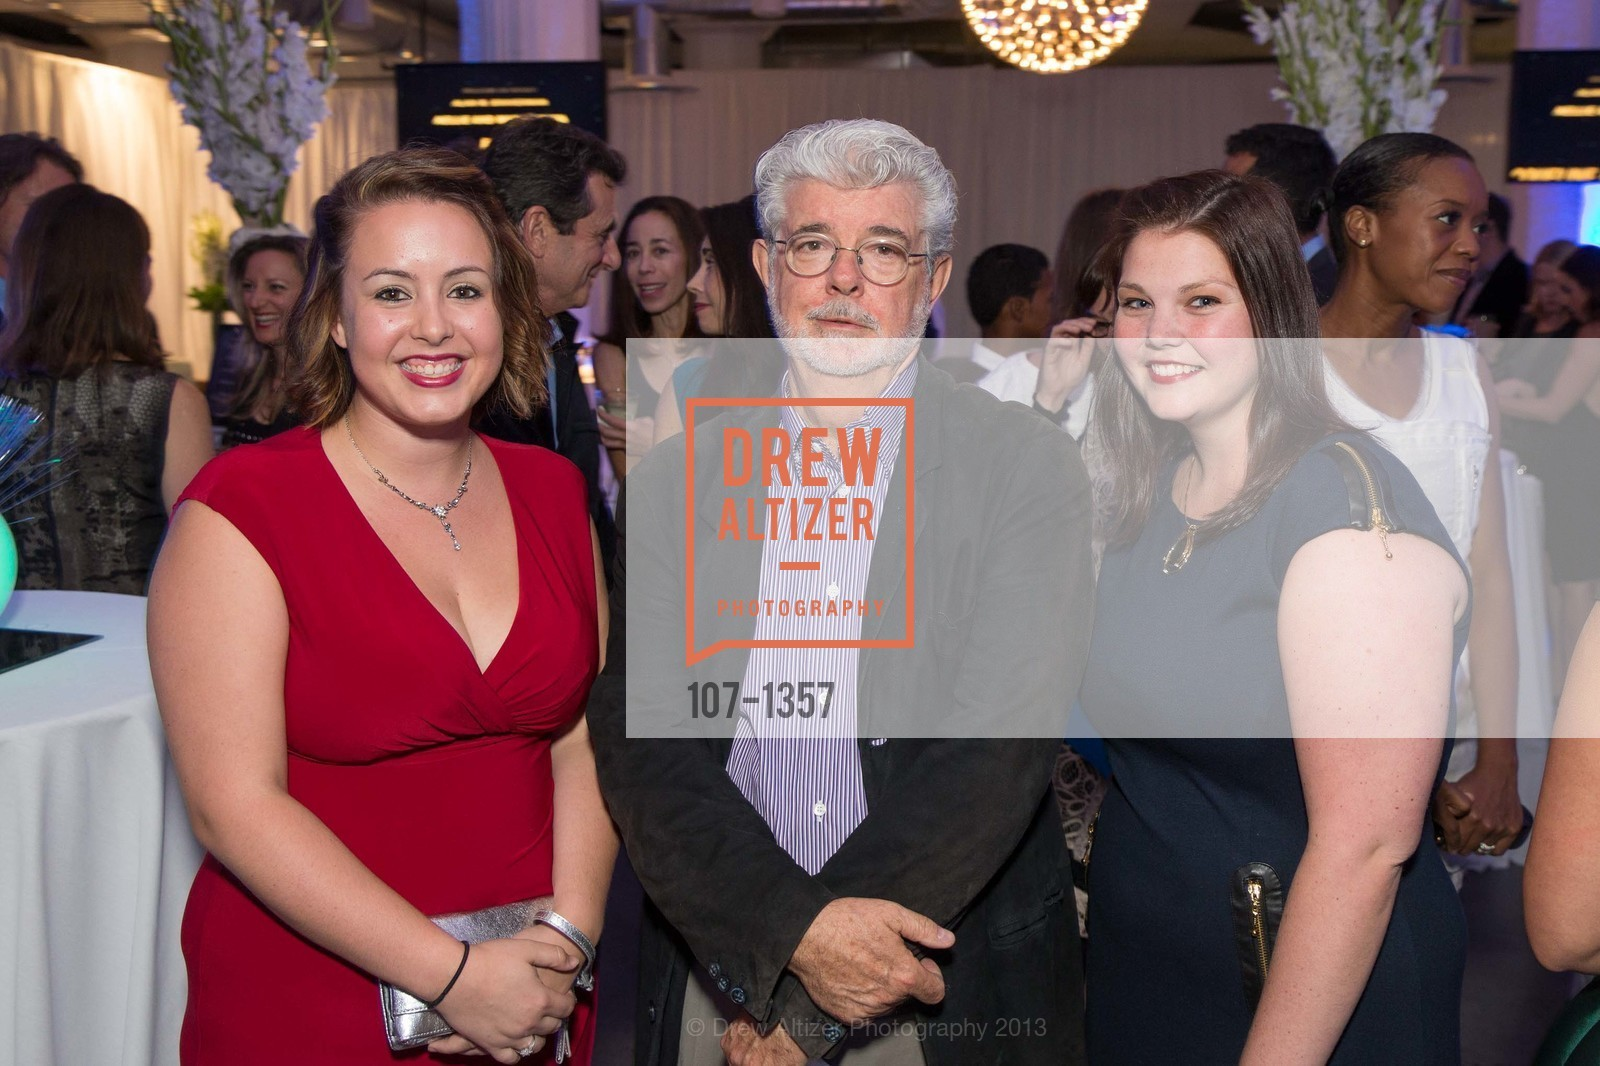 Kassie Barroquillo, George Lucas, Laura Patch, Photo #107-1357